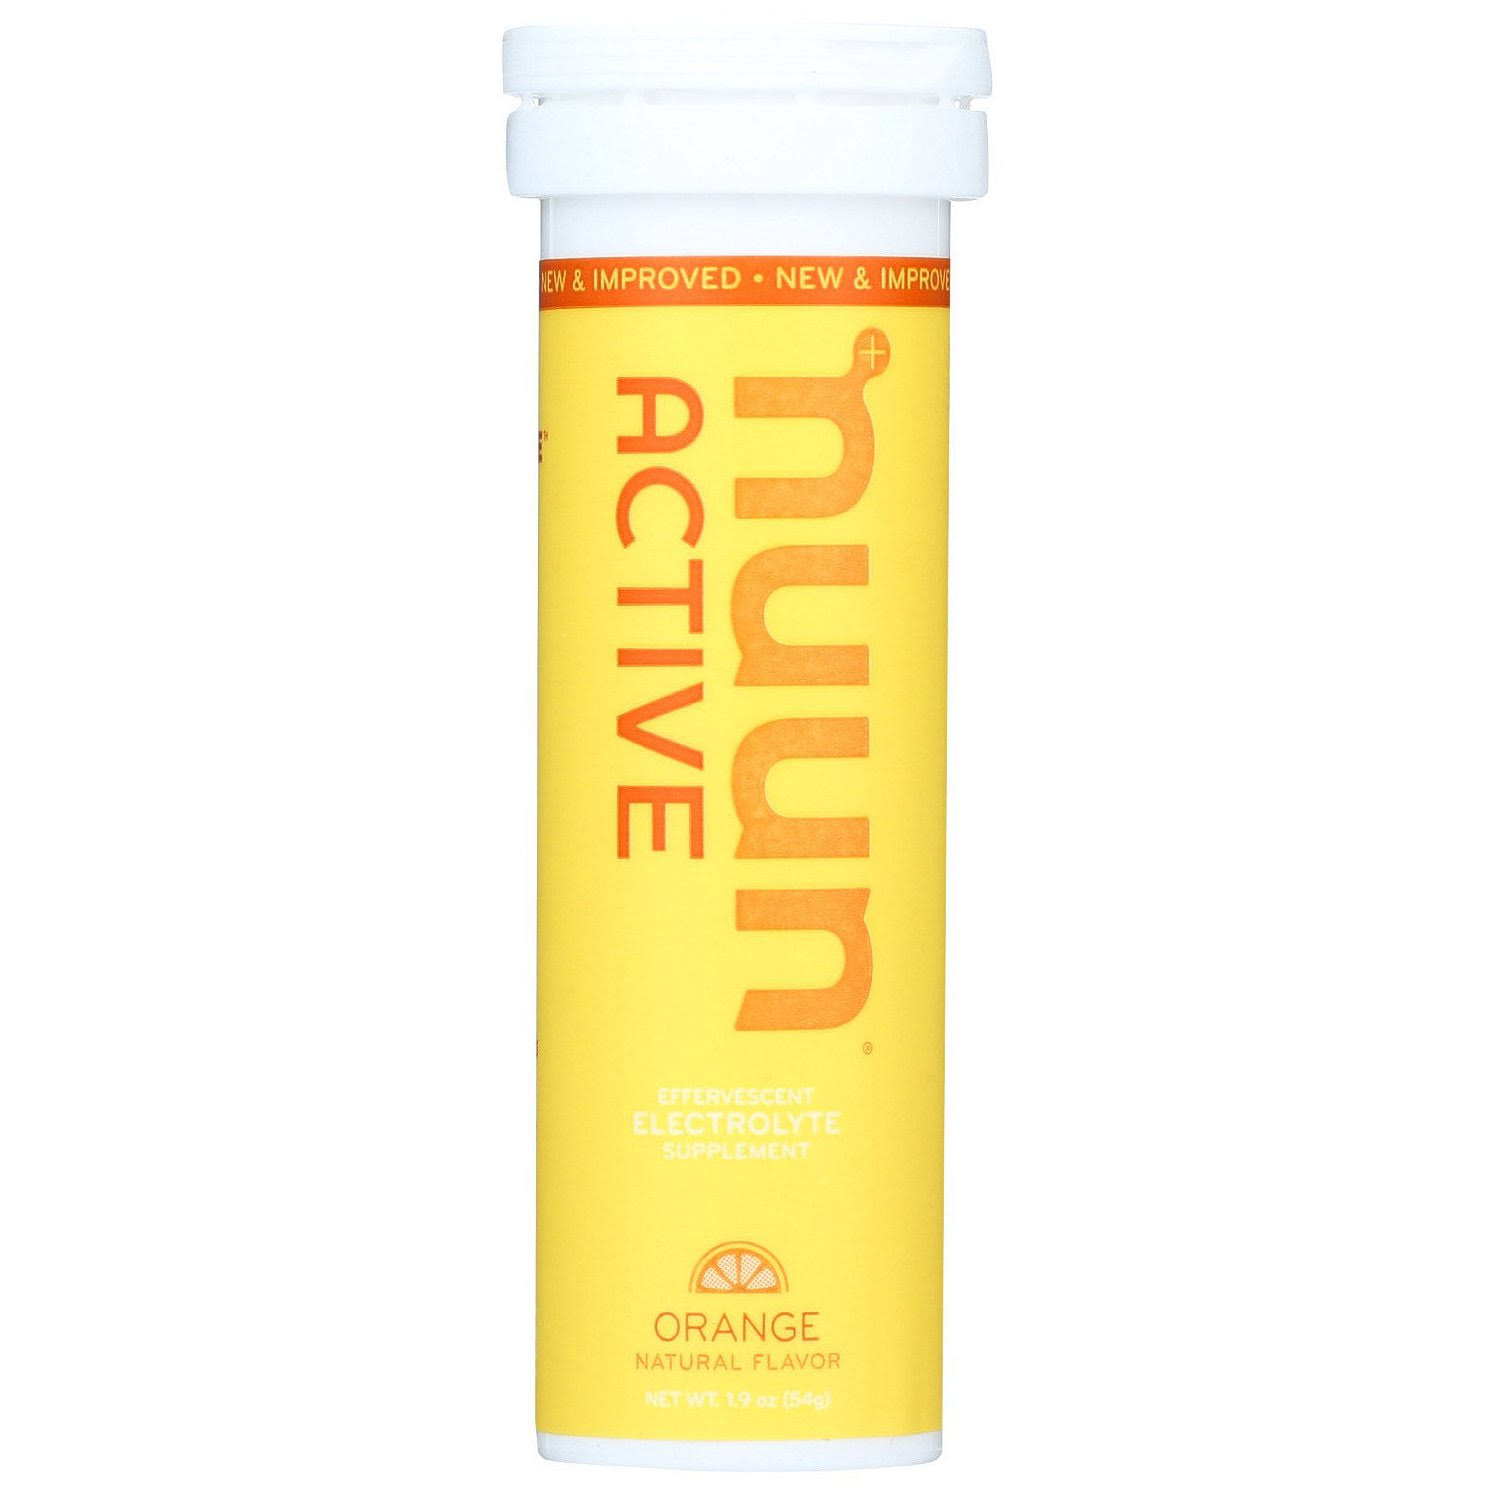 Nuun Active Effervescent Electrolyte Supplement - Orange, 54g